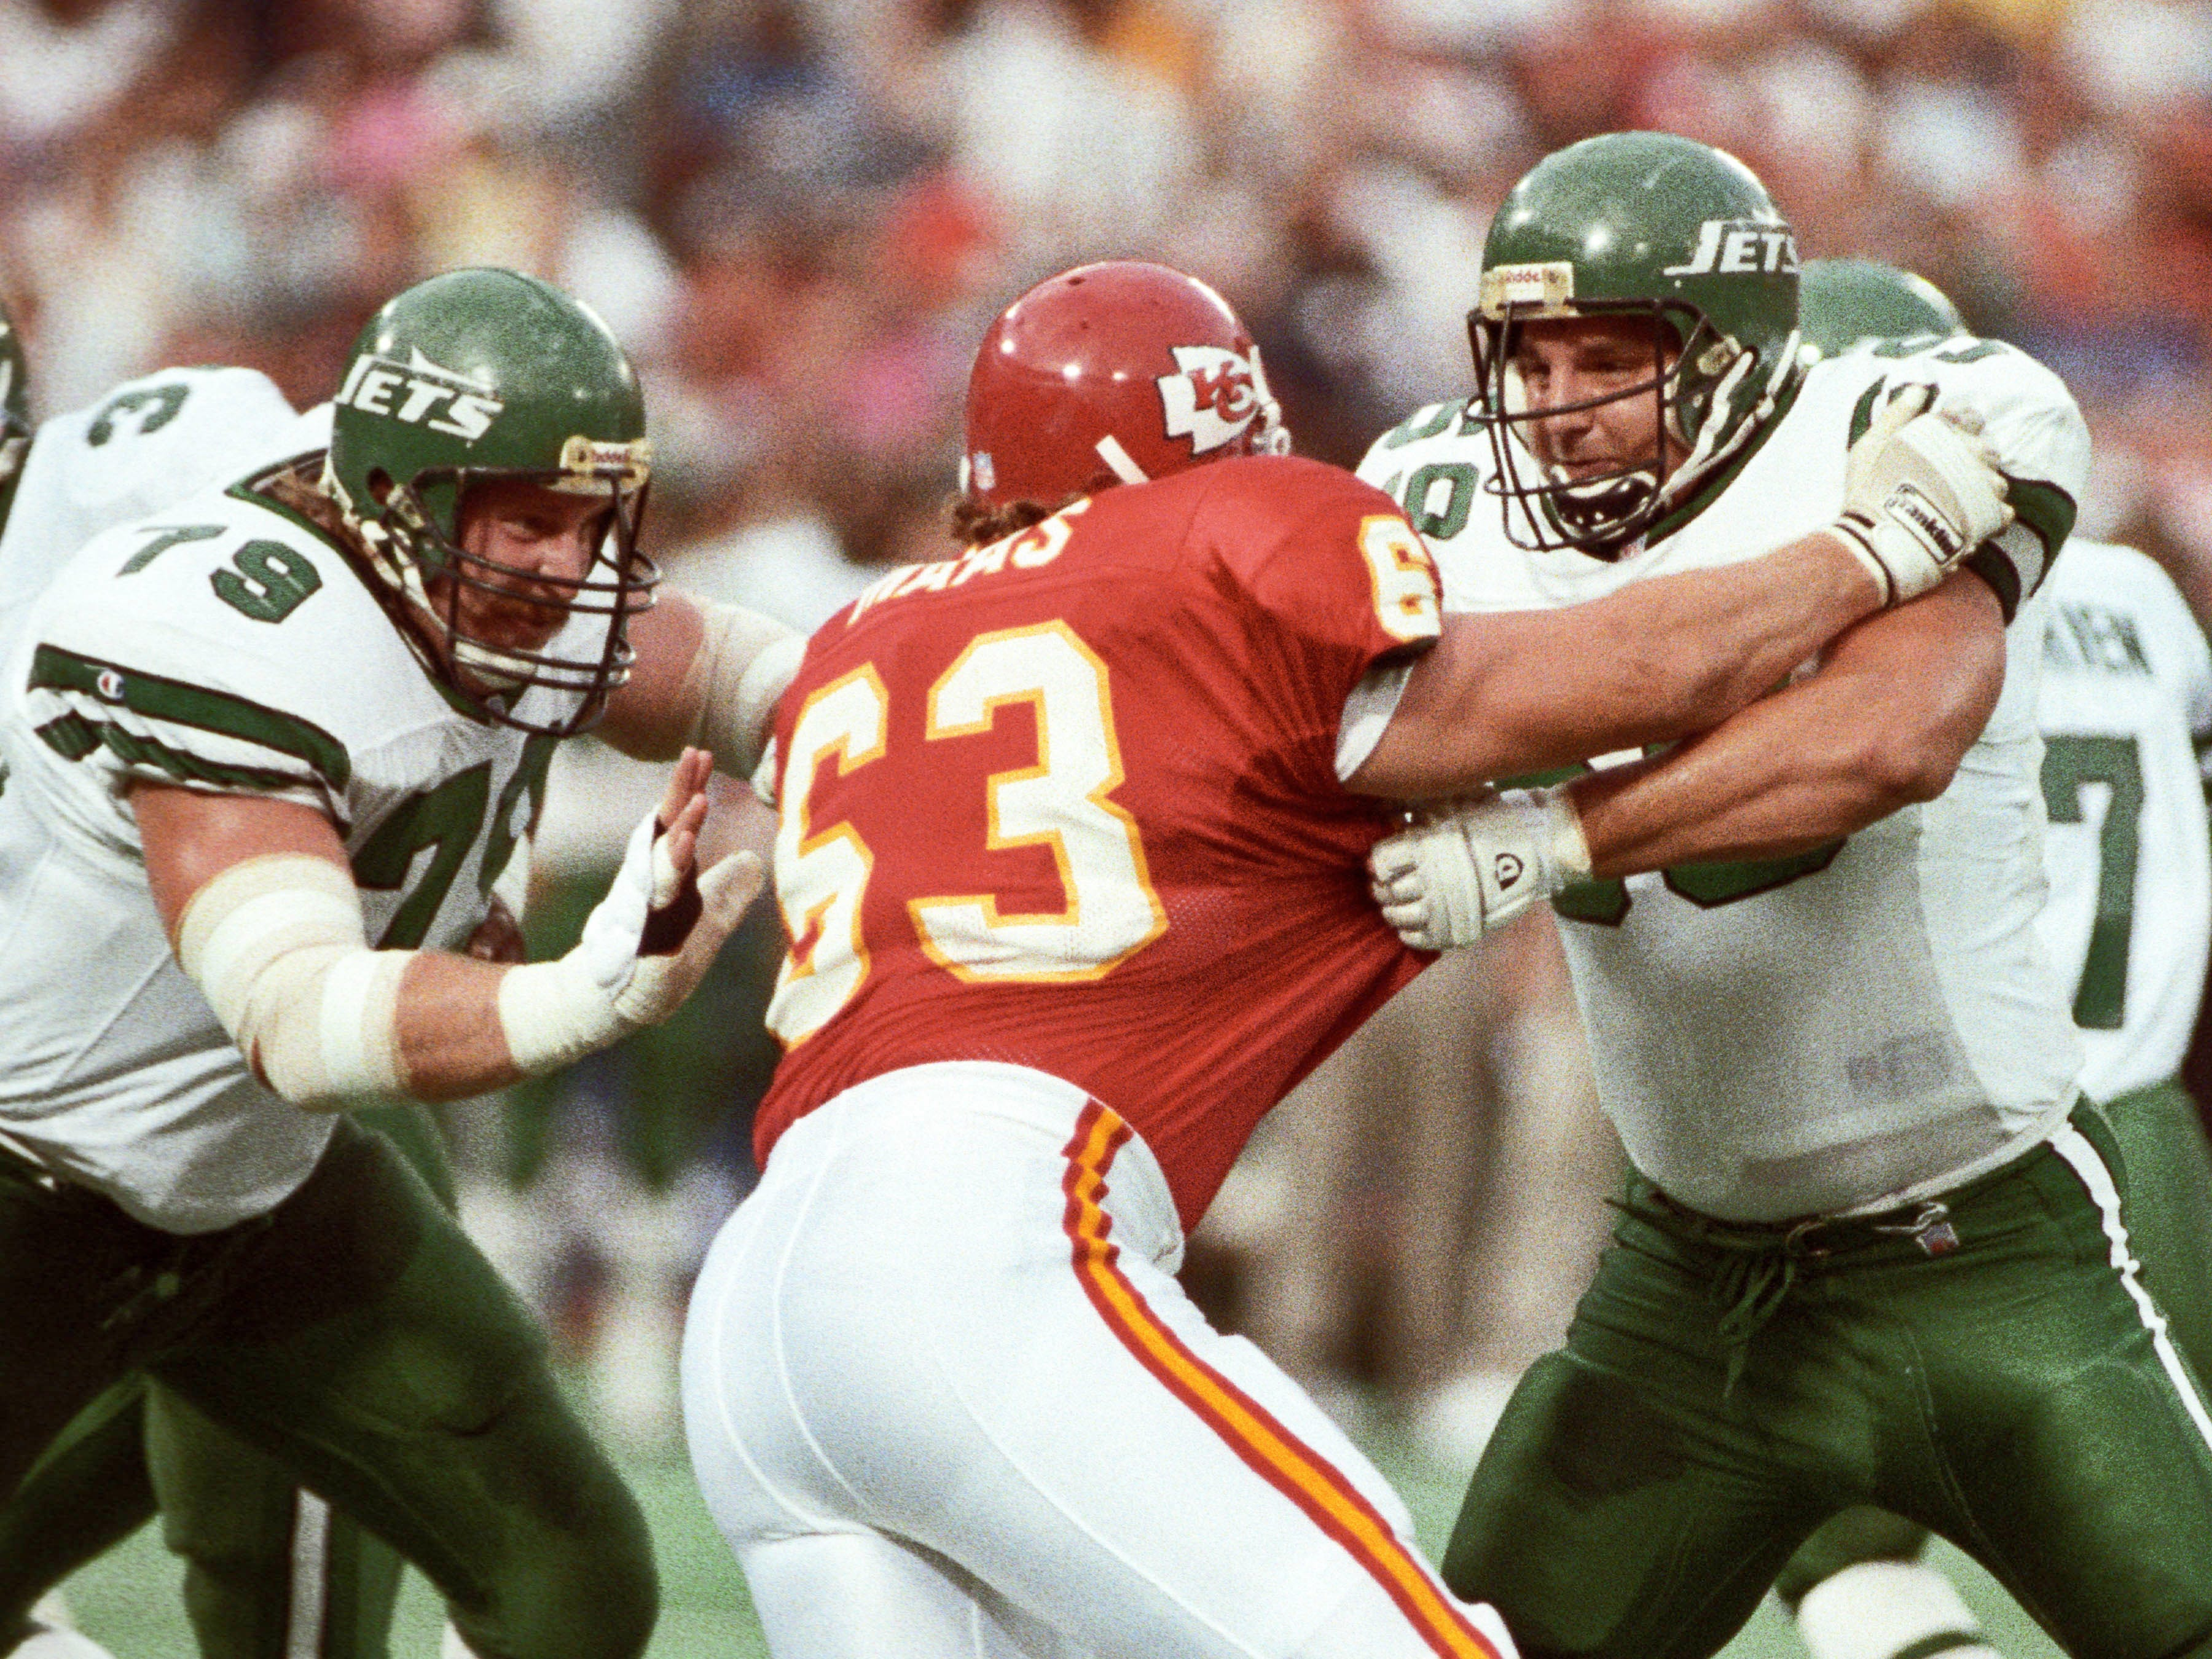 New York Jets offensive linemen Mike Haight, left, and Jeff Criswell in action against Kanas City Chiefs defensive end Bill Maas (63) at Busch Stadium during the 1991 preseason. Haight, a former Hawkeye, was selected with the 22nd pick in the 1986 NFL Draft by the Jets.